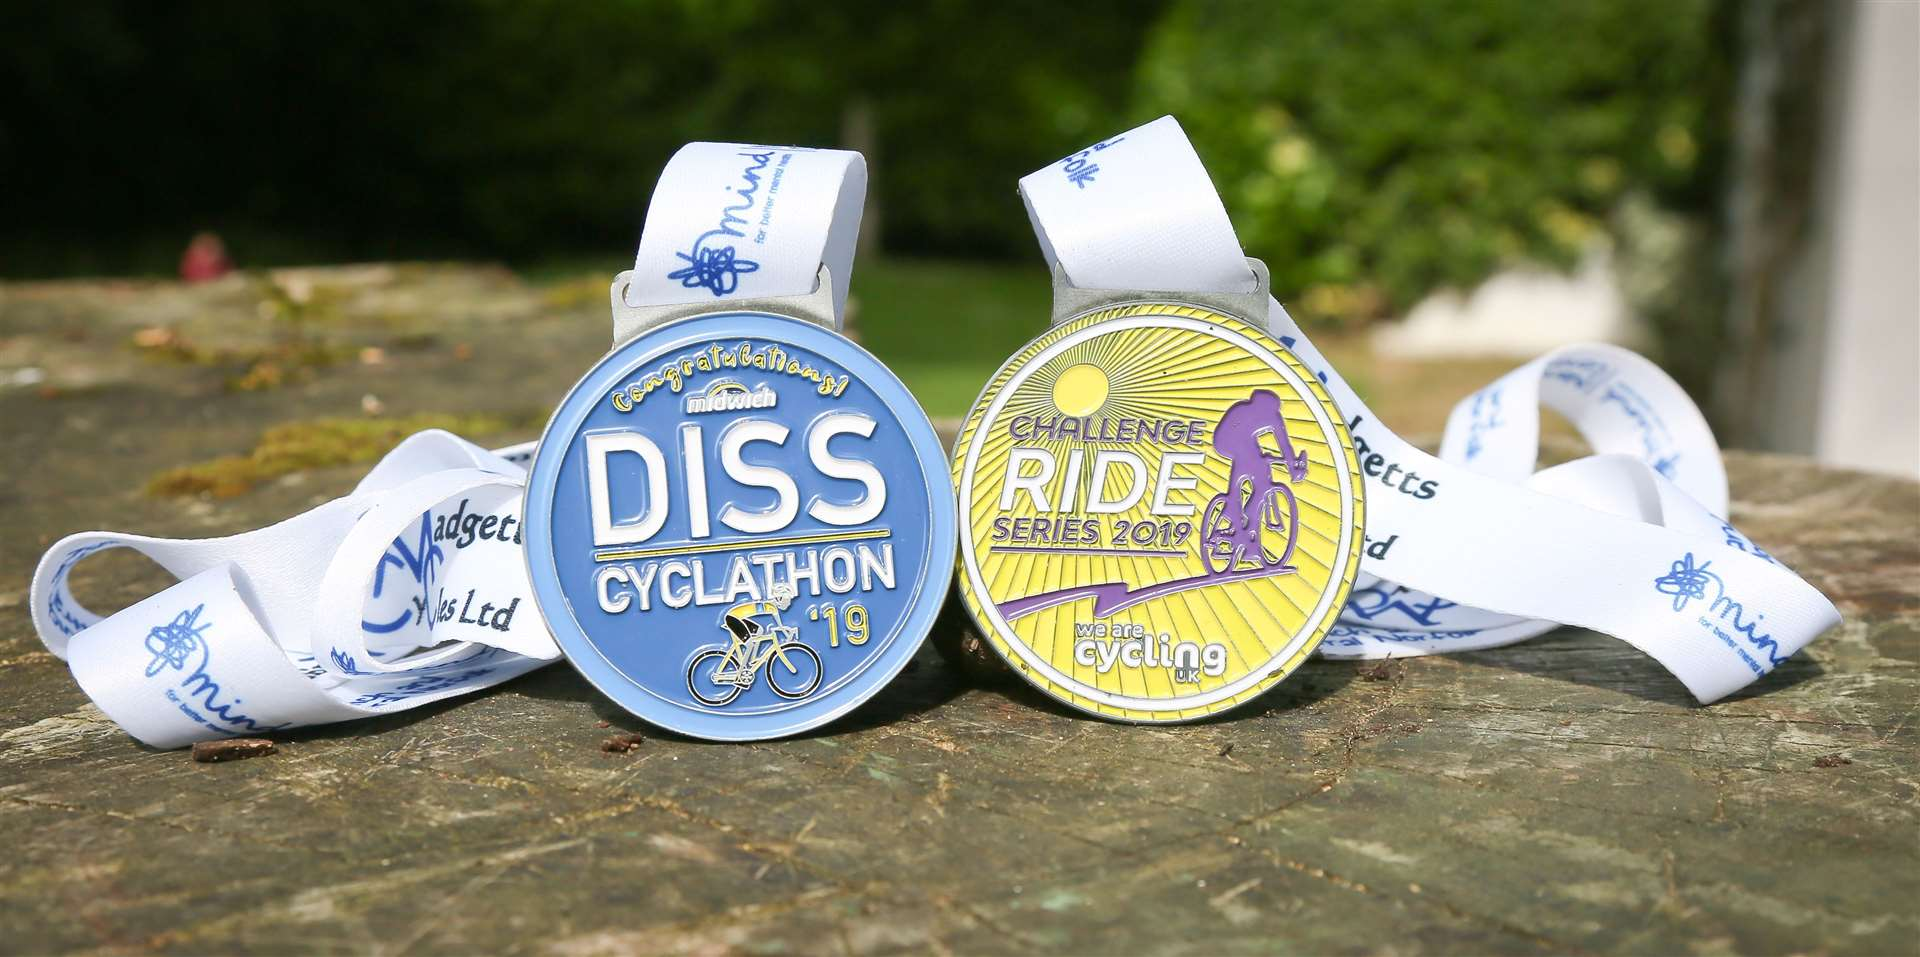 In 2018, Diss Cyclathon won a national award.